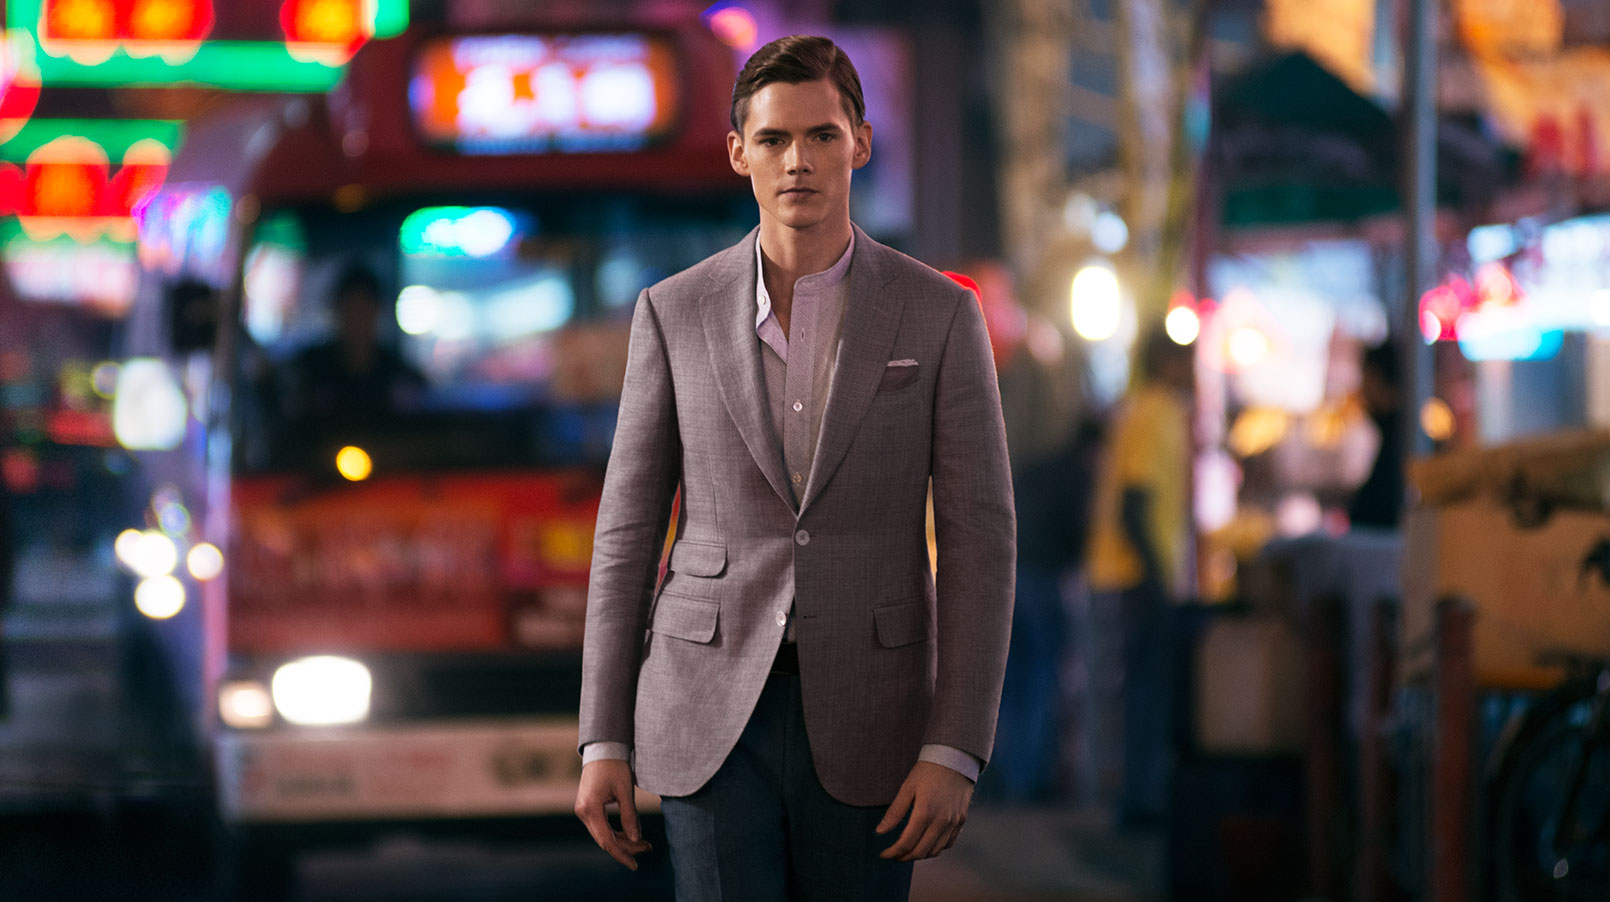 Canali Style from Hong Kong